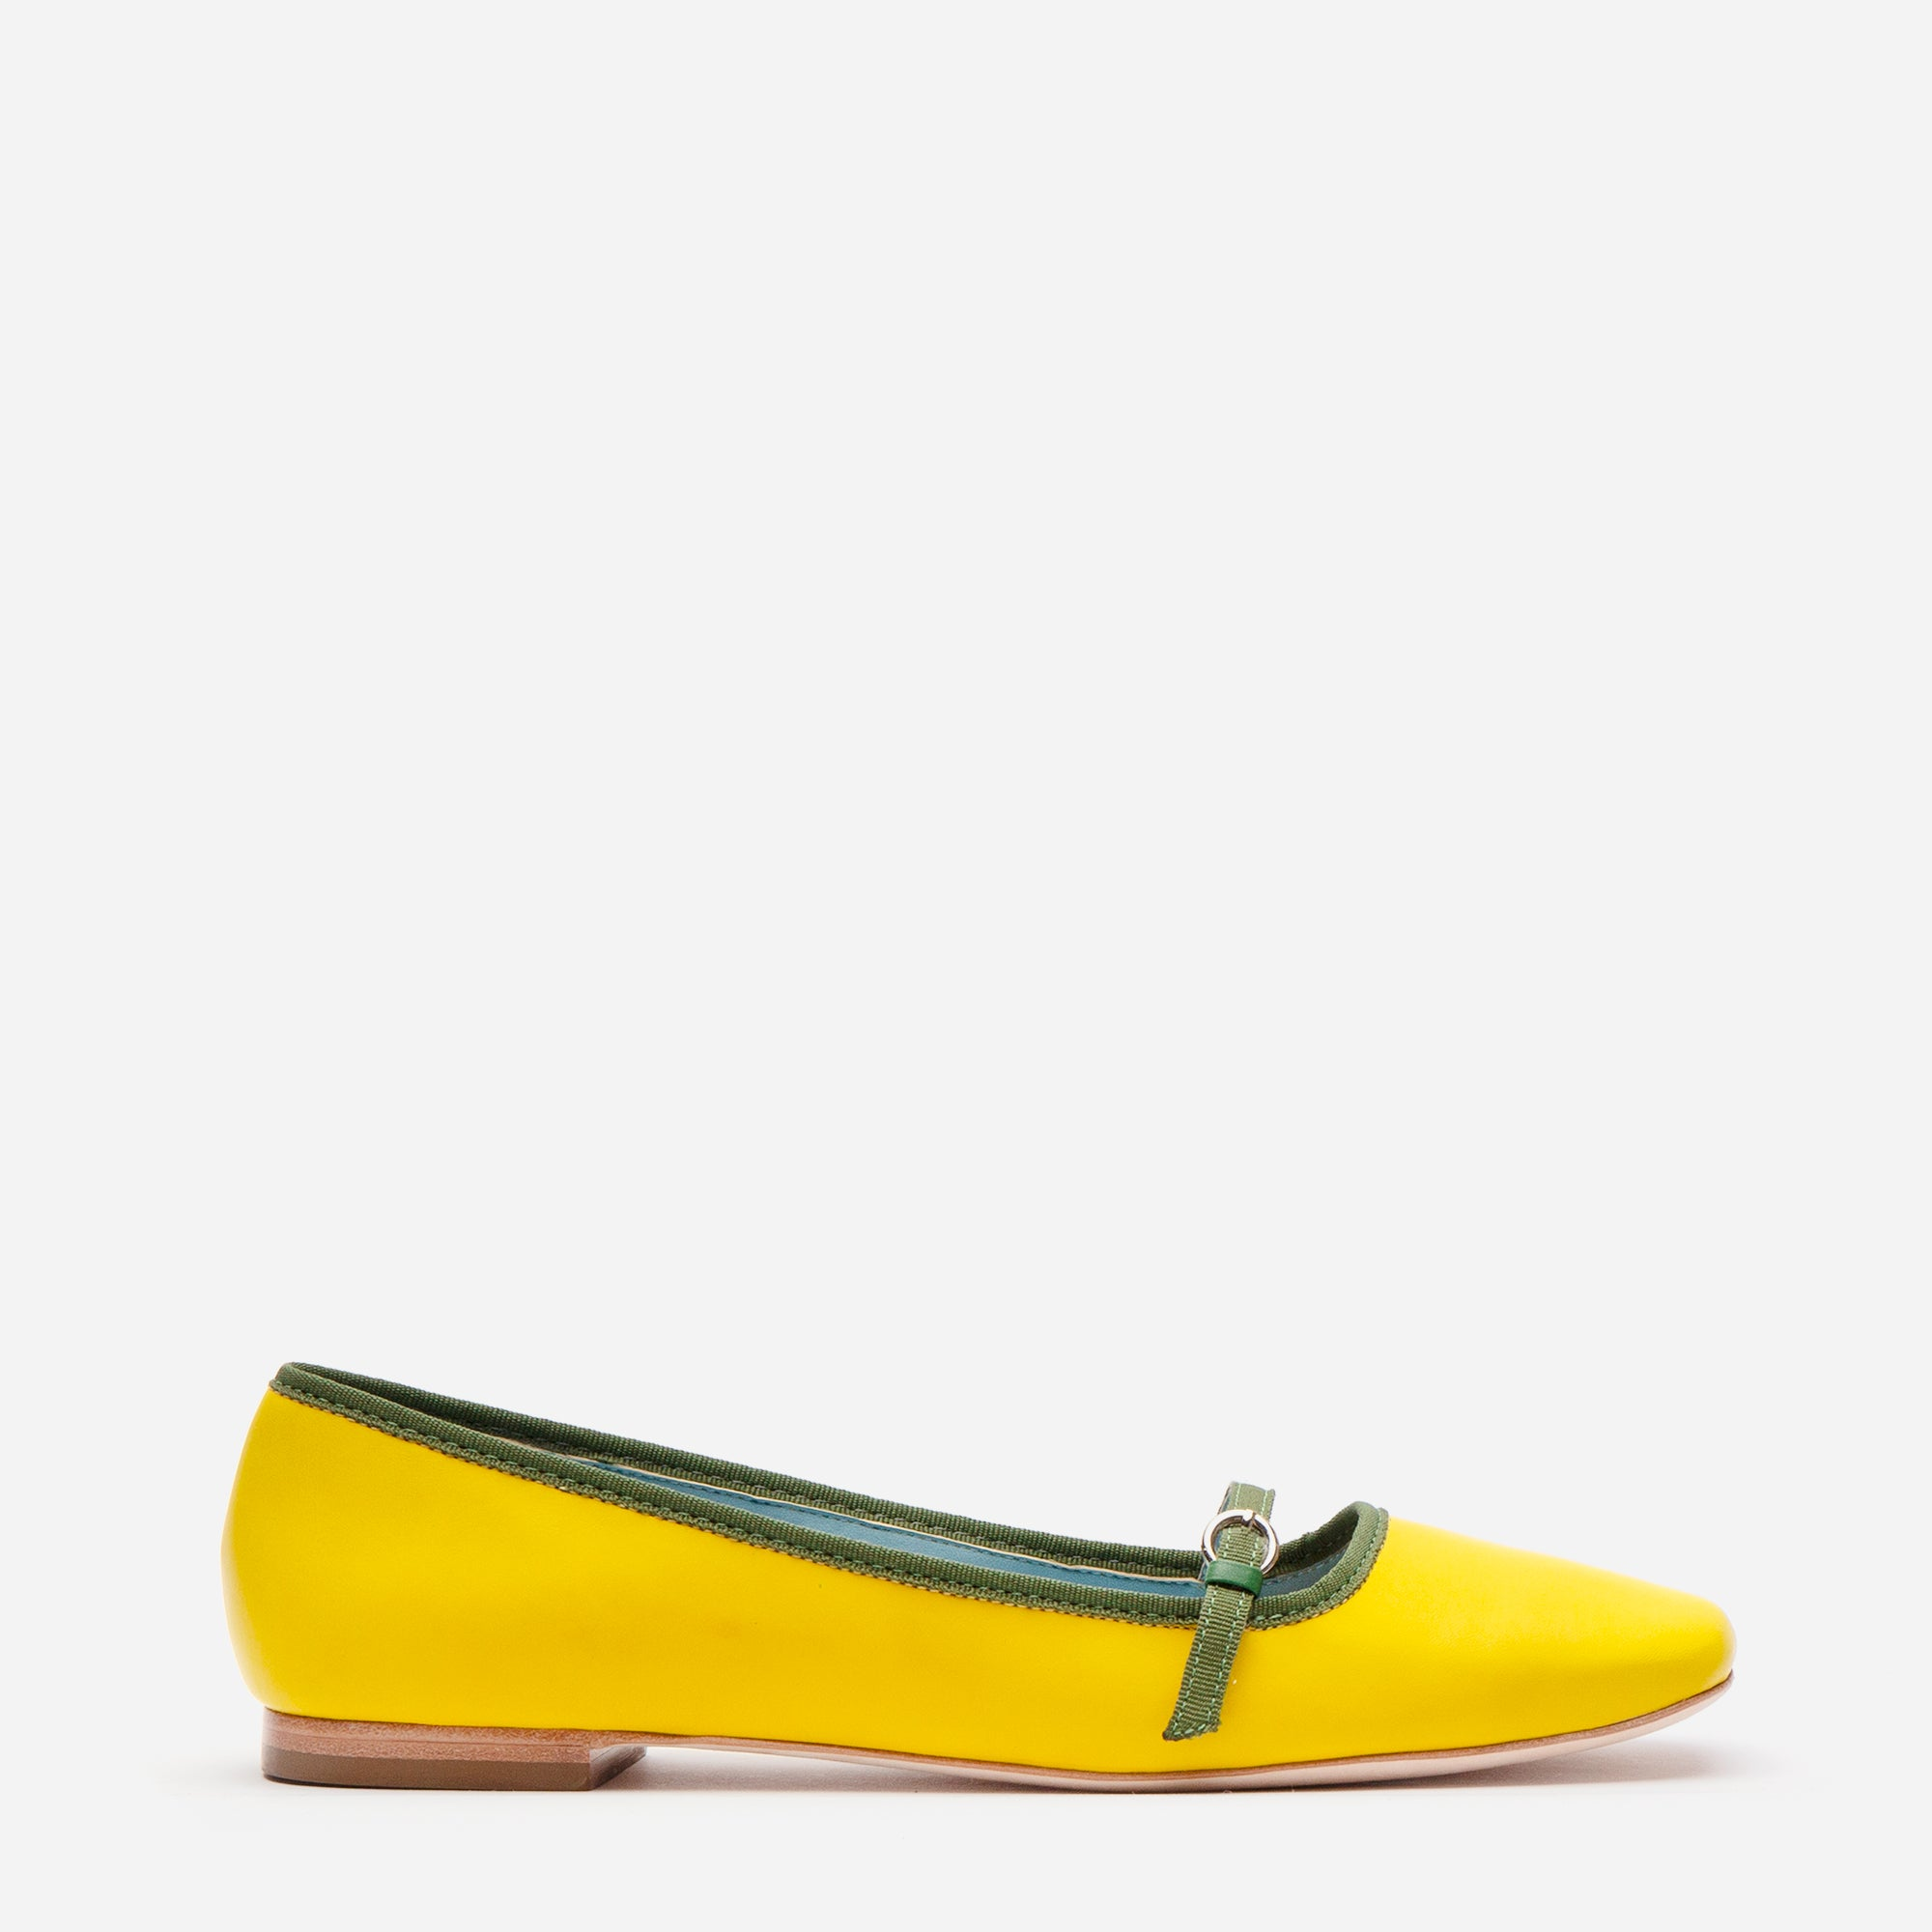 Josie Leather Flat Yellow Green - Frances Valentine